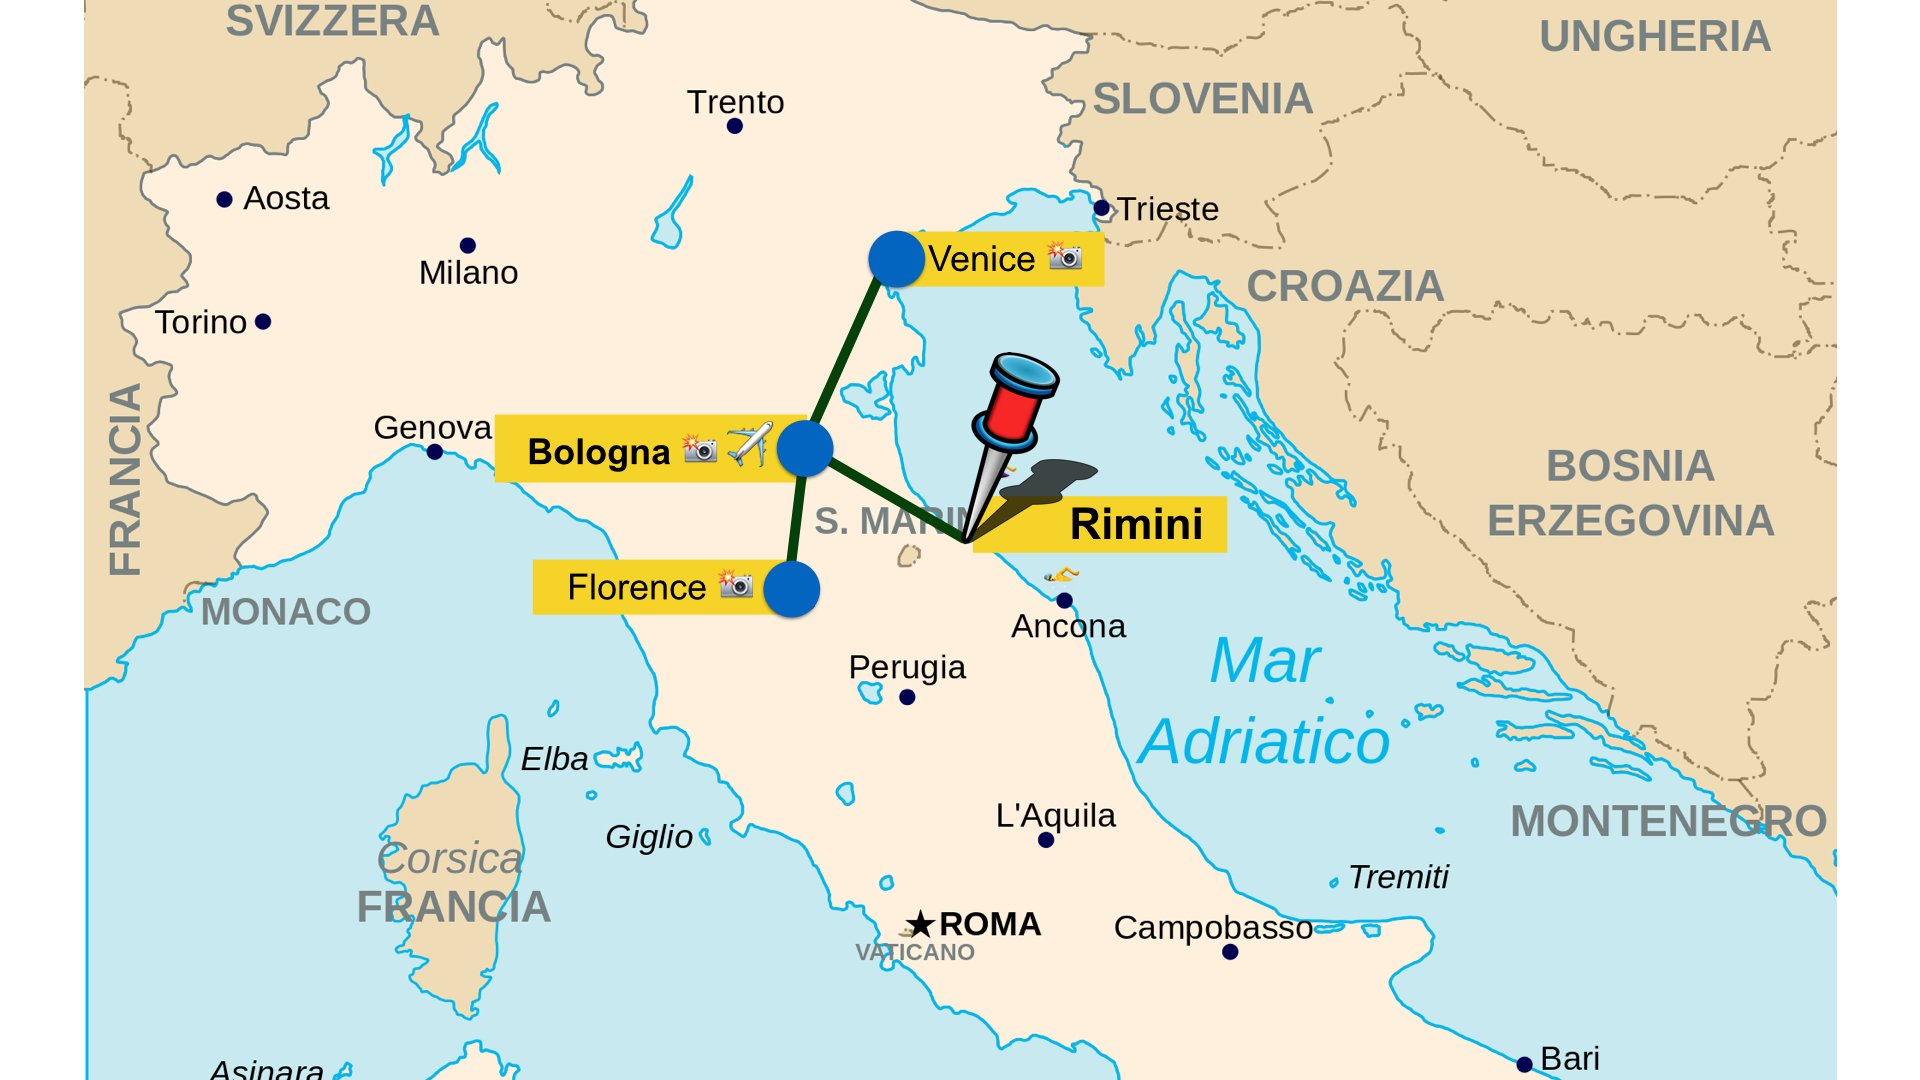 Come to Rimini EuroPython 2017 Rimini 916 July 2017